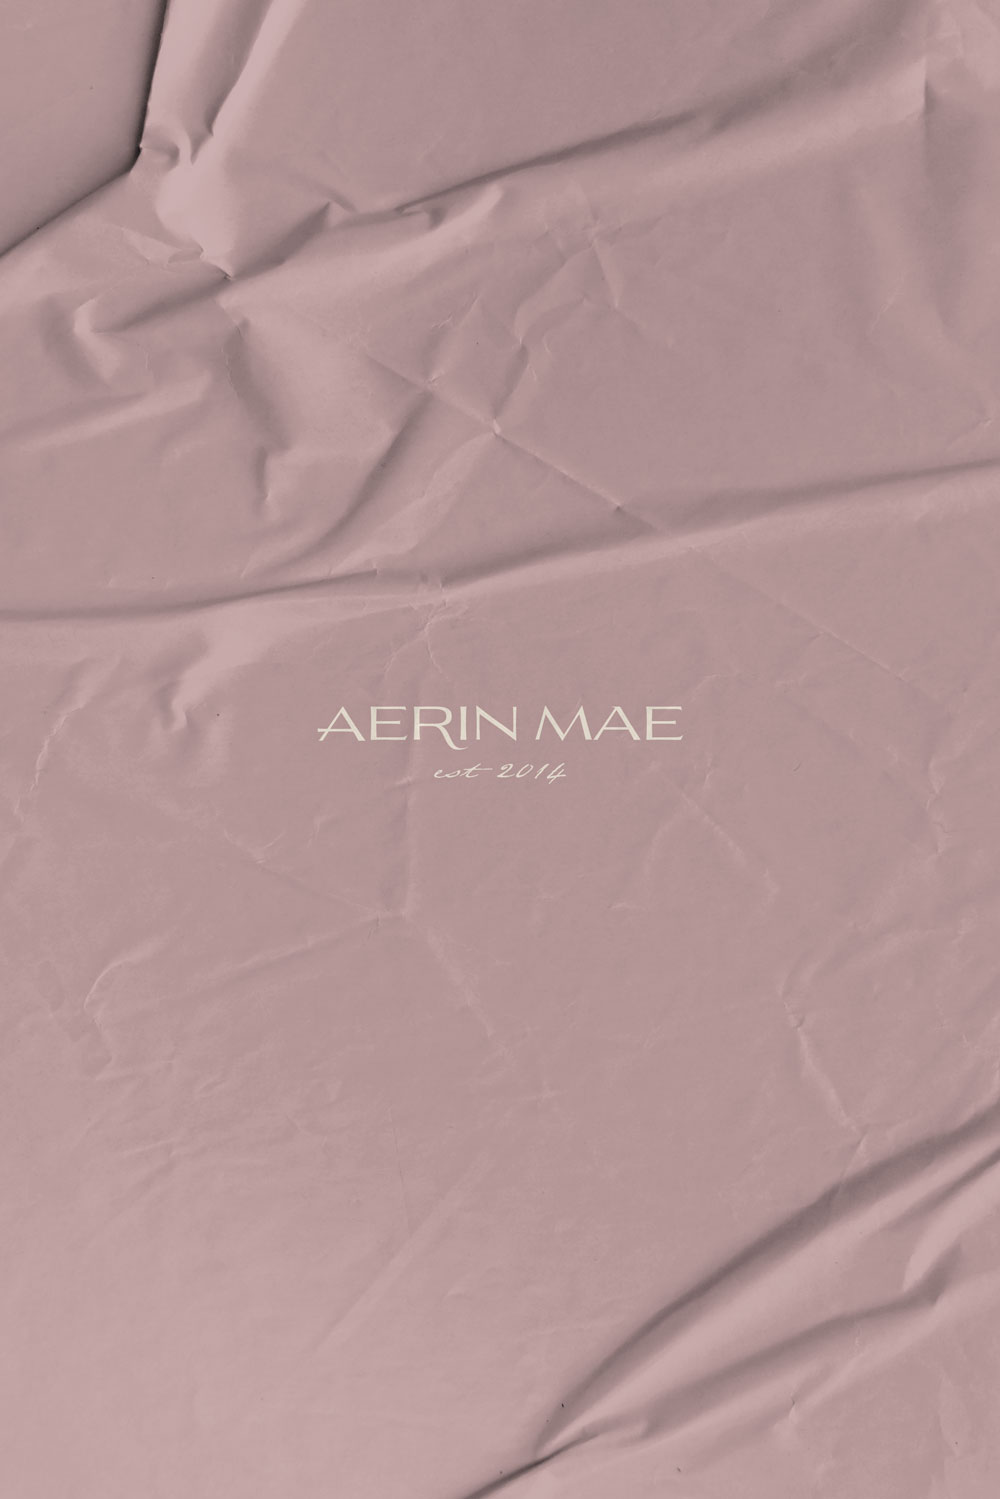 Aerin Mae Brand Mockup by Everything Here Now